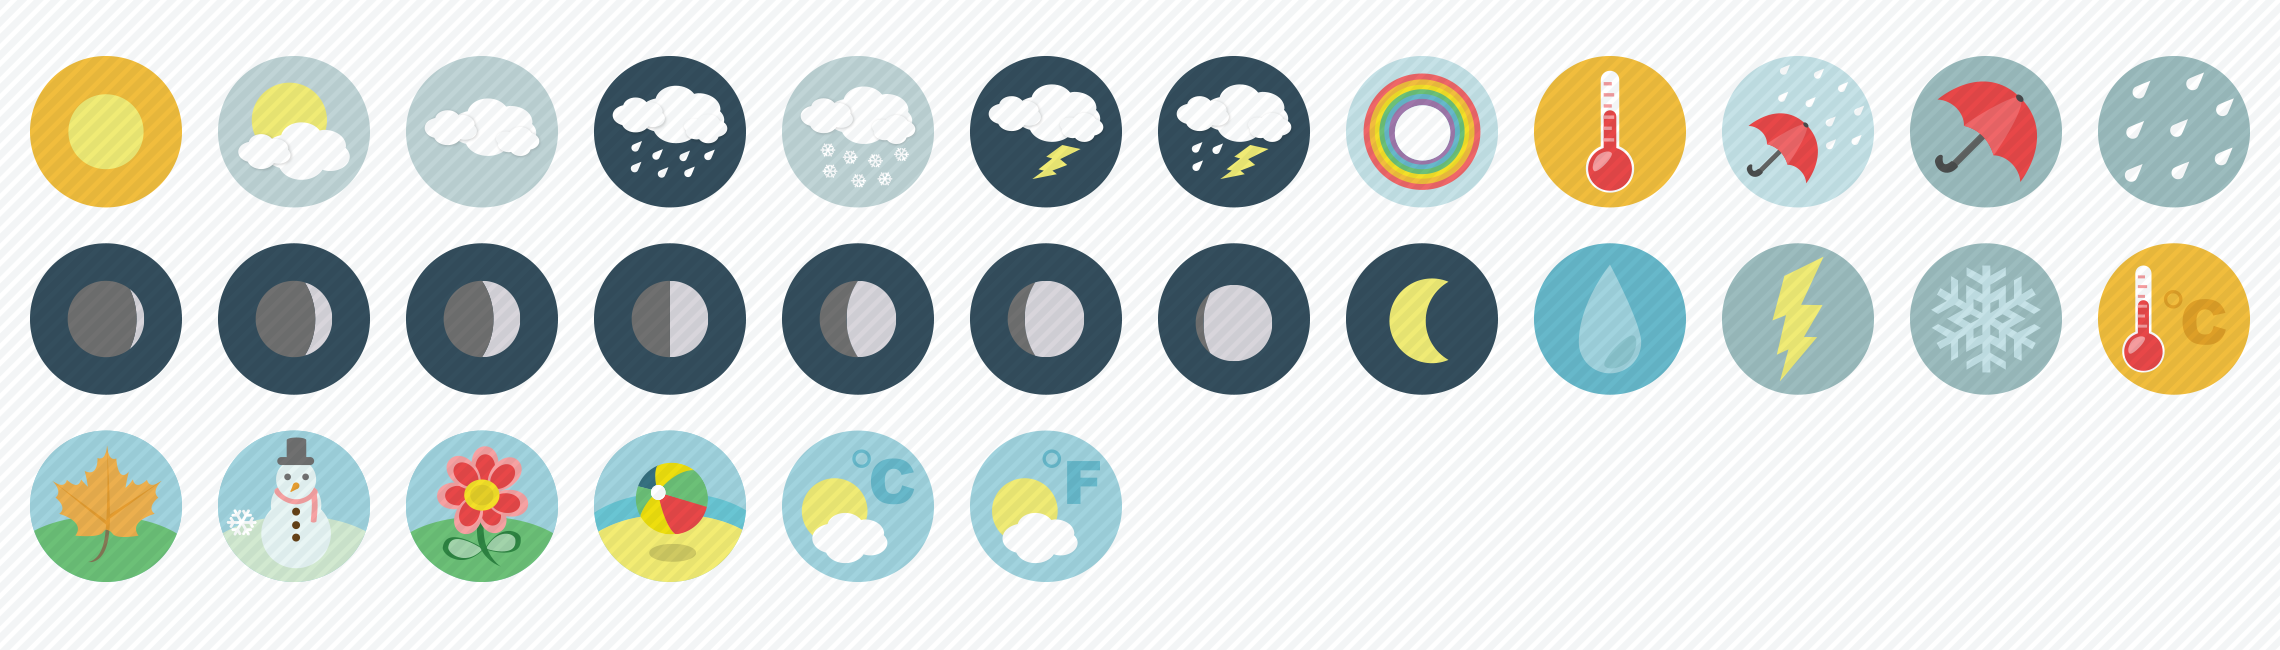 weather-flat-icons-set